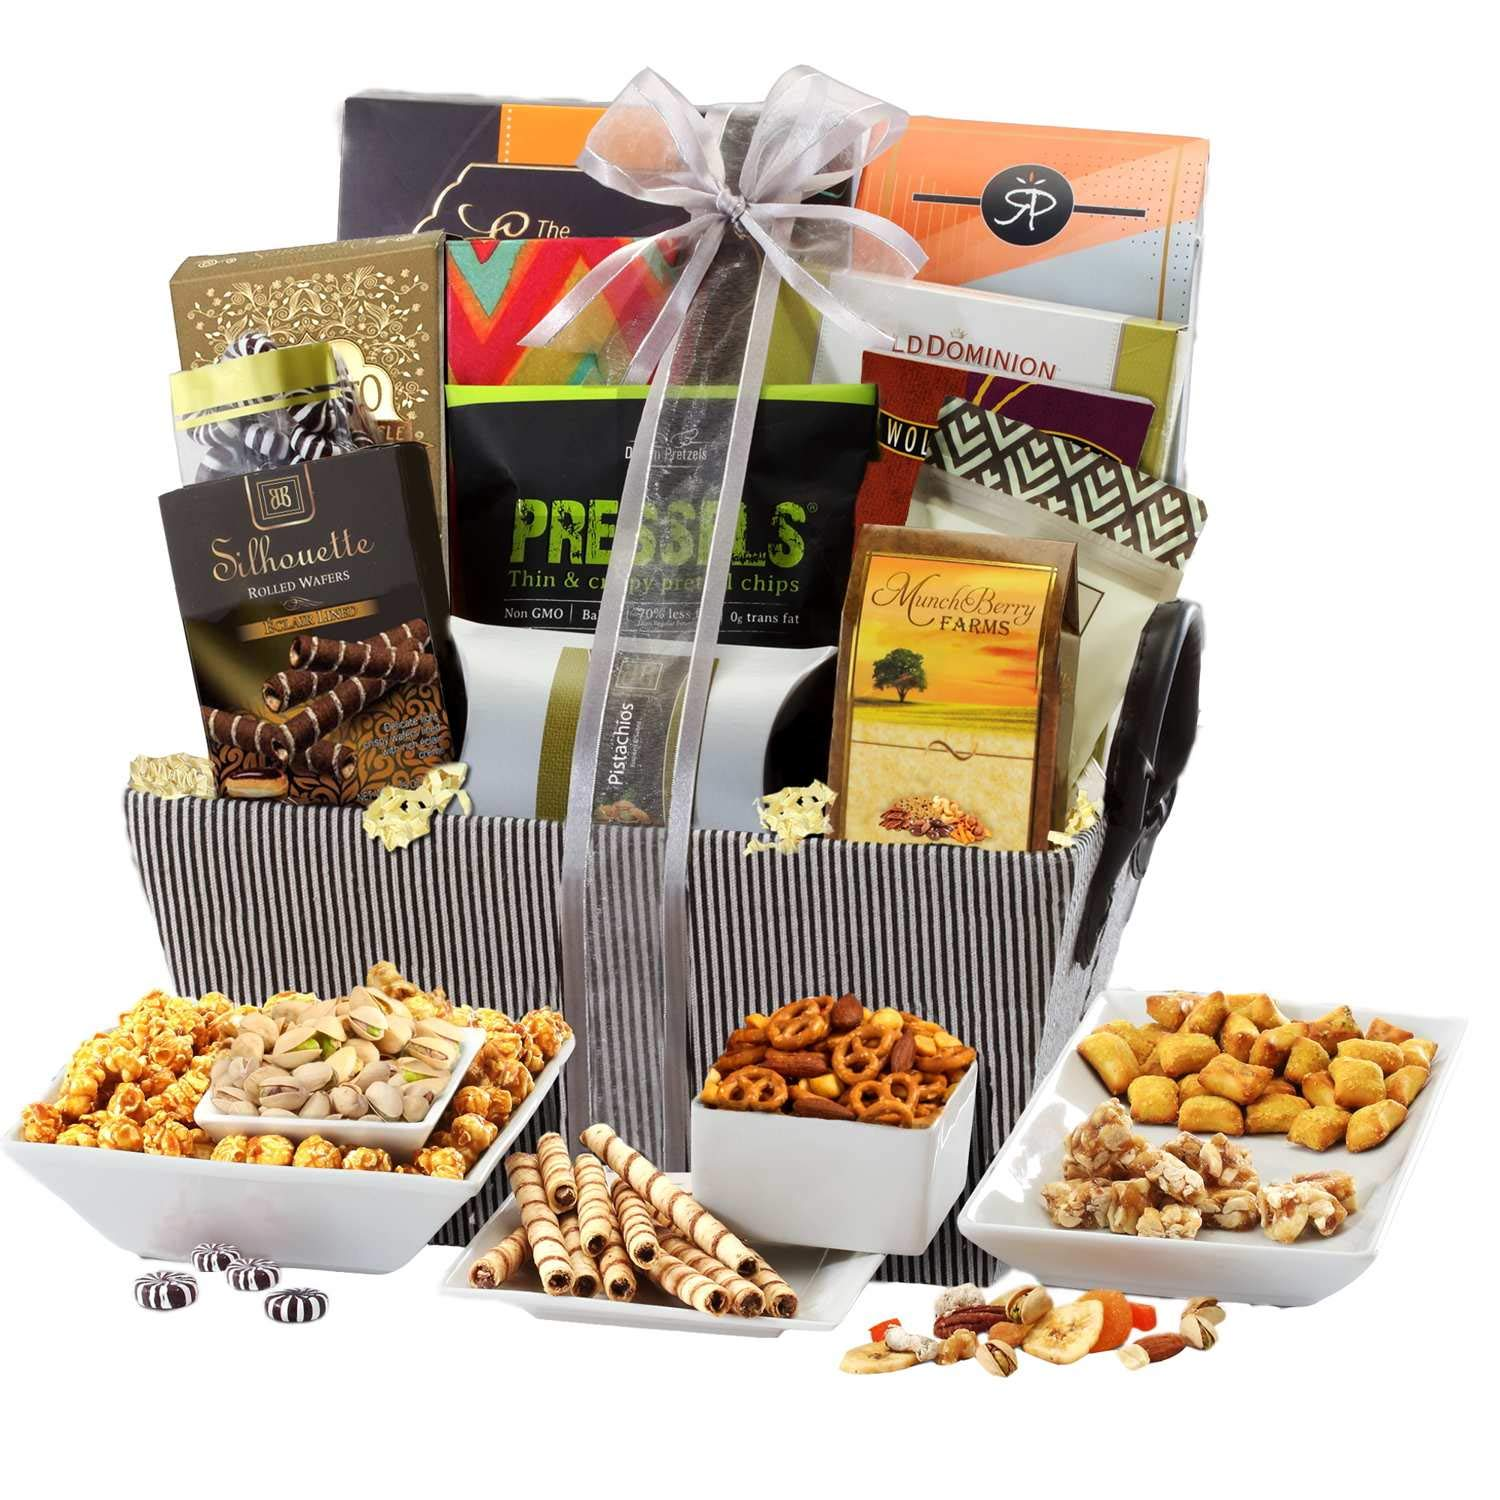 Sweet and Savory Gift Basket with Chocolates, Seasoned Nuts, Brittle, Pastries, Assorted Sweets & Snacks by Broadway Basketeers